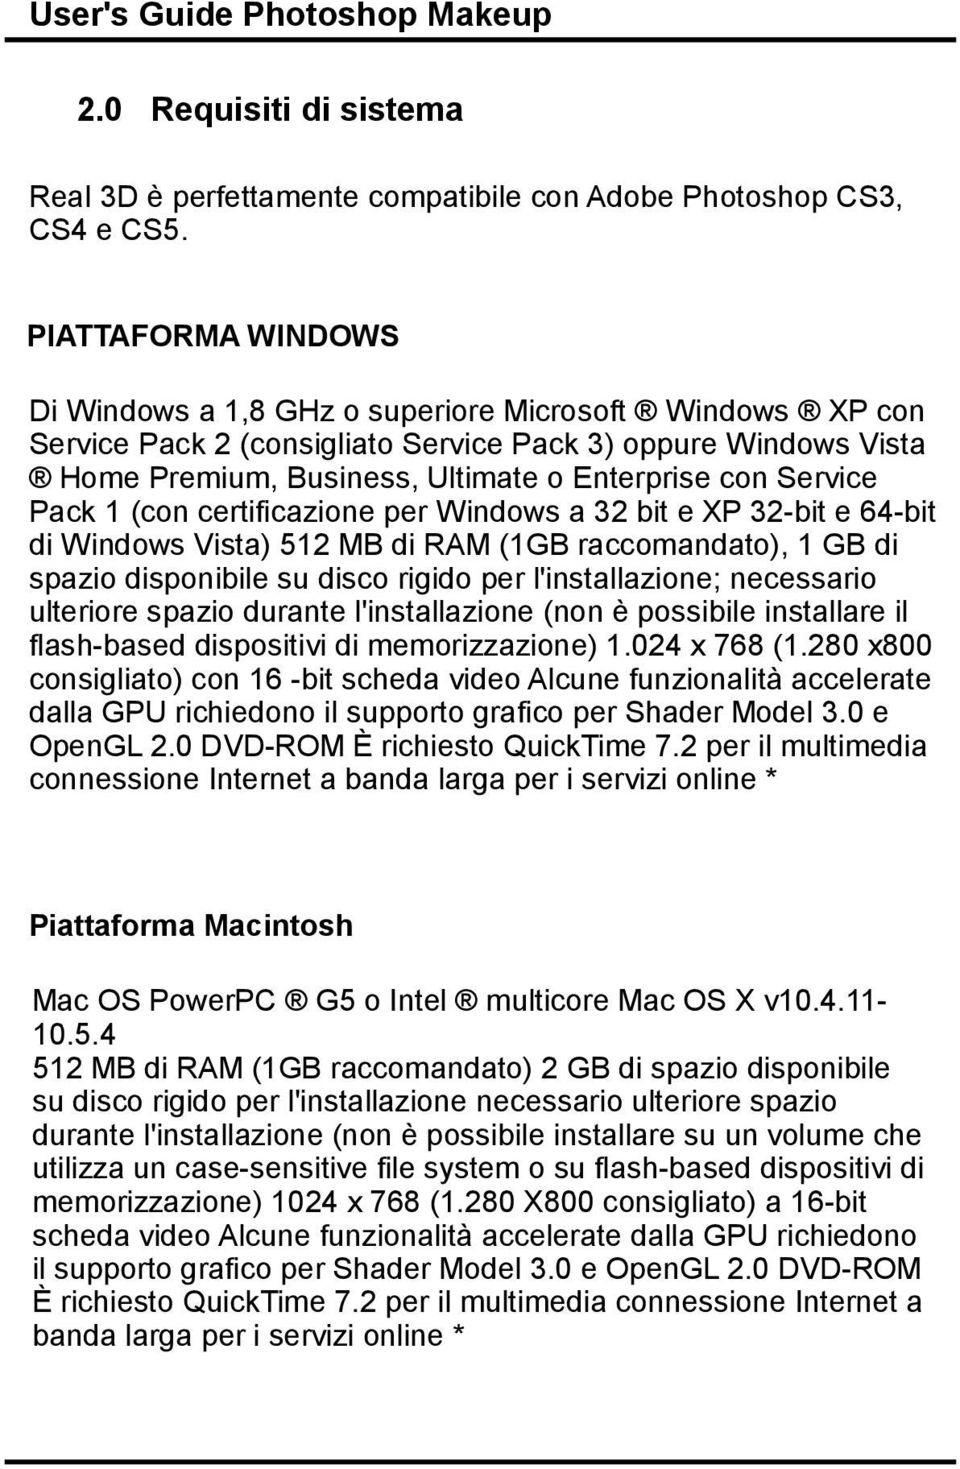 Service Pack 1 (con certificazione per Windows a 32 bit e XP 32-bit e 64-bit di Windows Vista) 512 MB di RAM (1GB raccomandato), 1 GB di spazio disponibile su disco rigido per l'installazione;